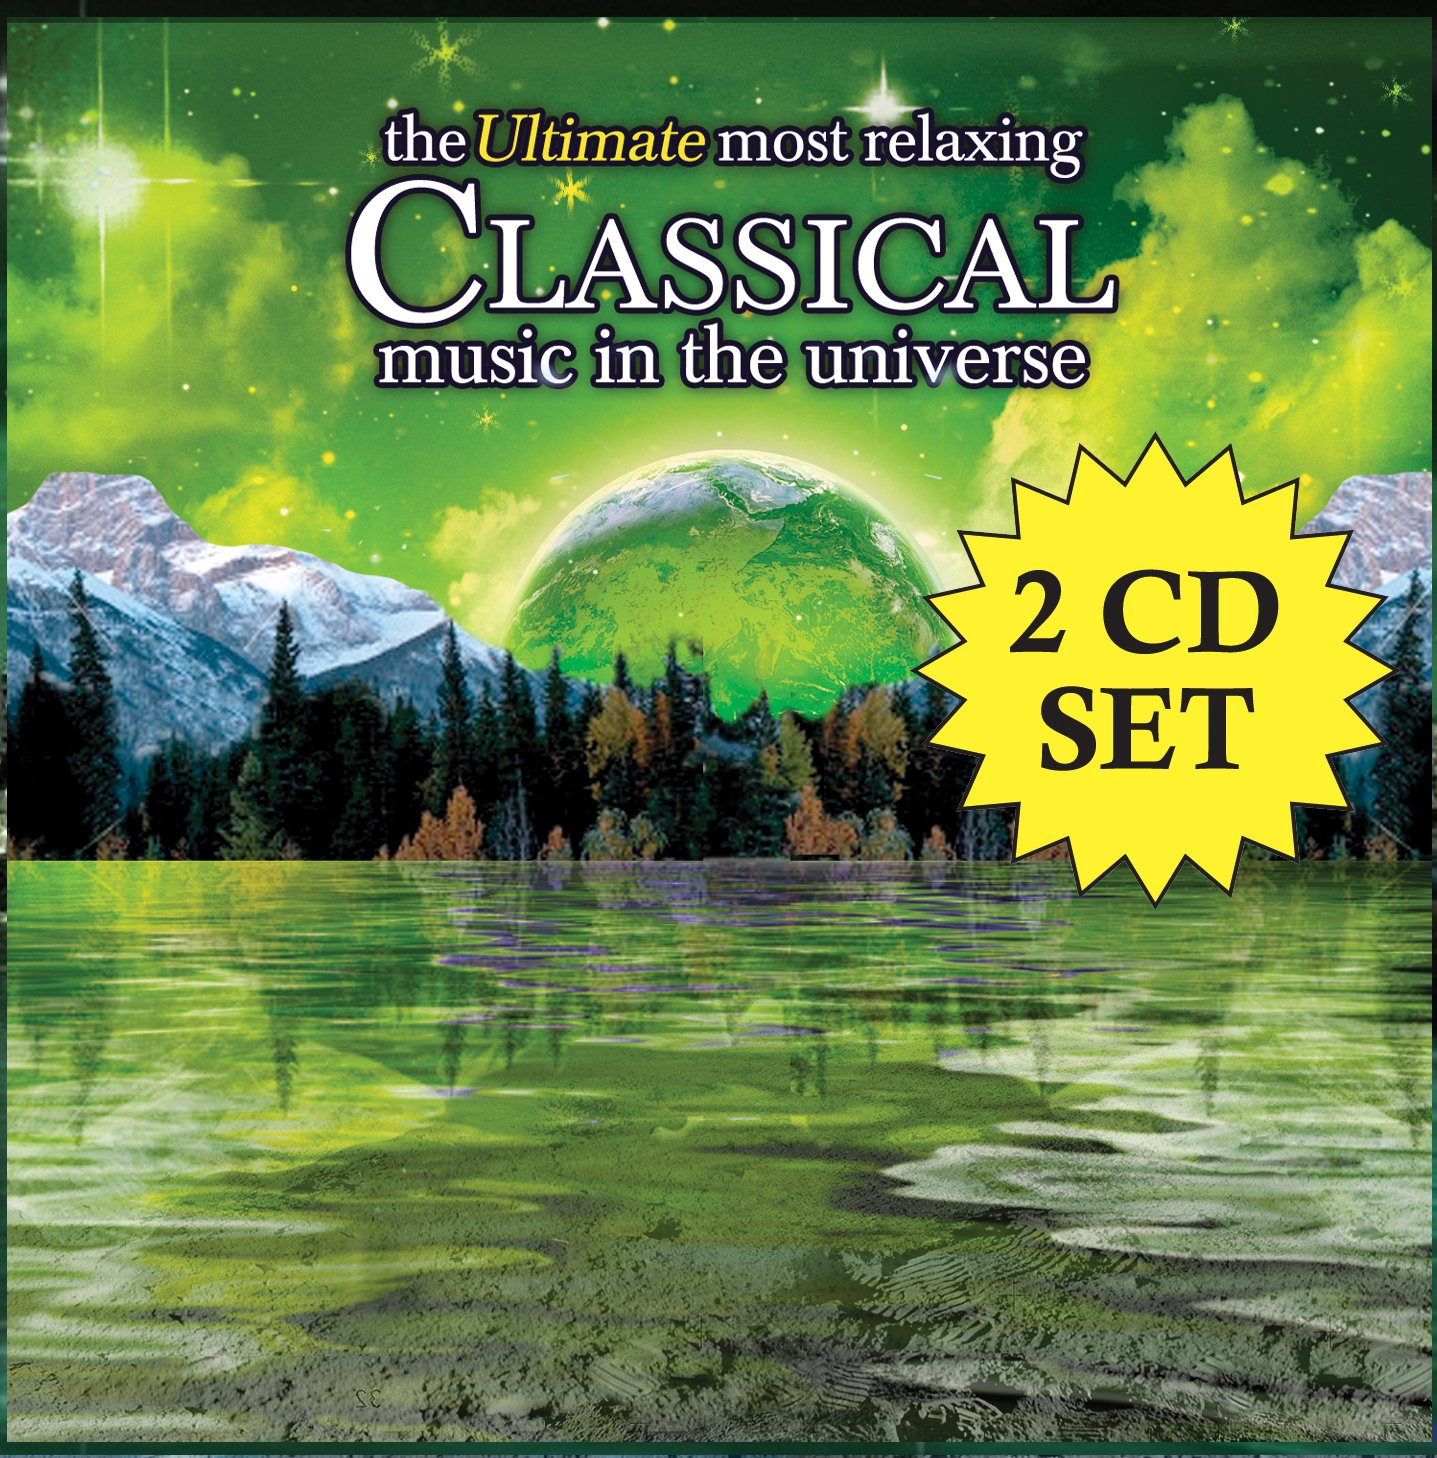 The Ultimate Most Relaxing Classical Music In The Universe [2 CD] by Savoy